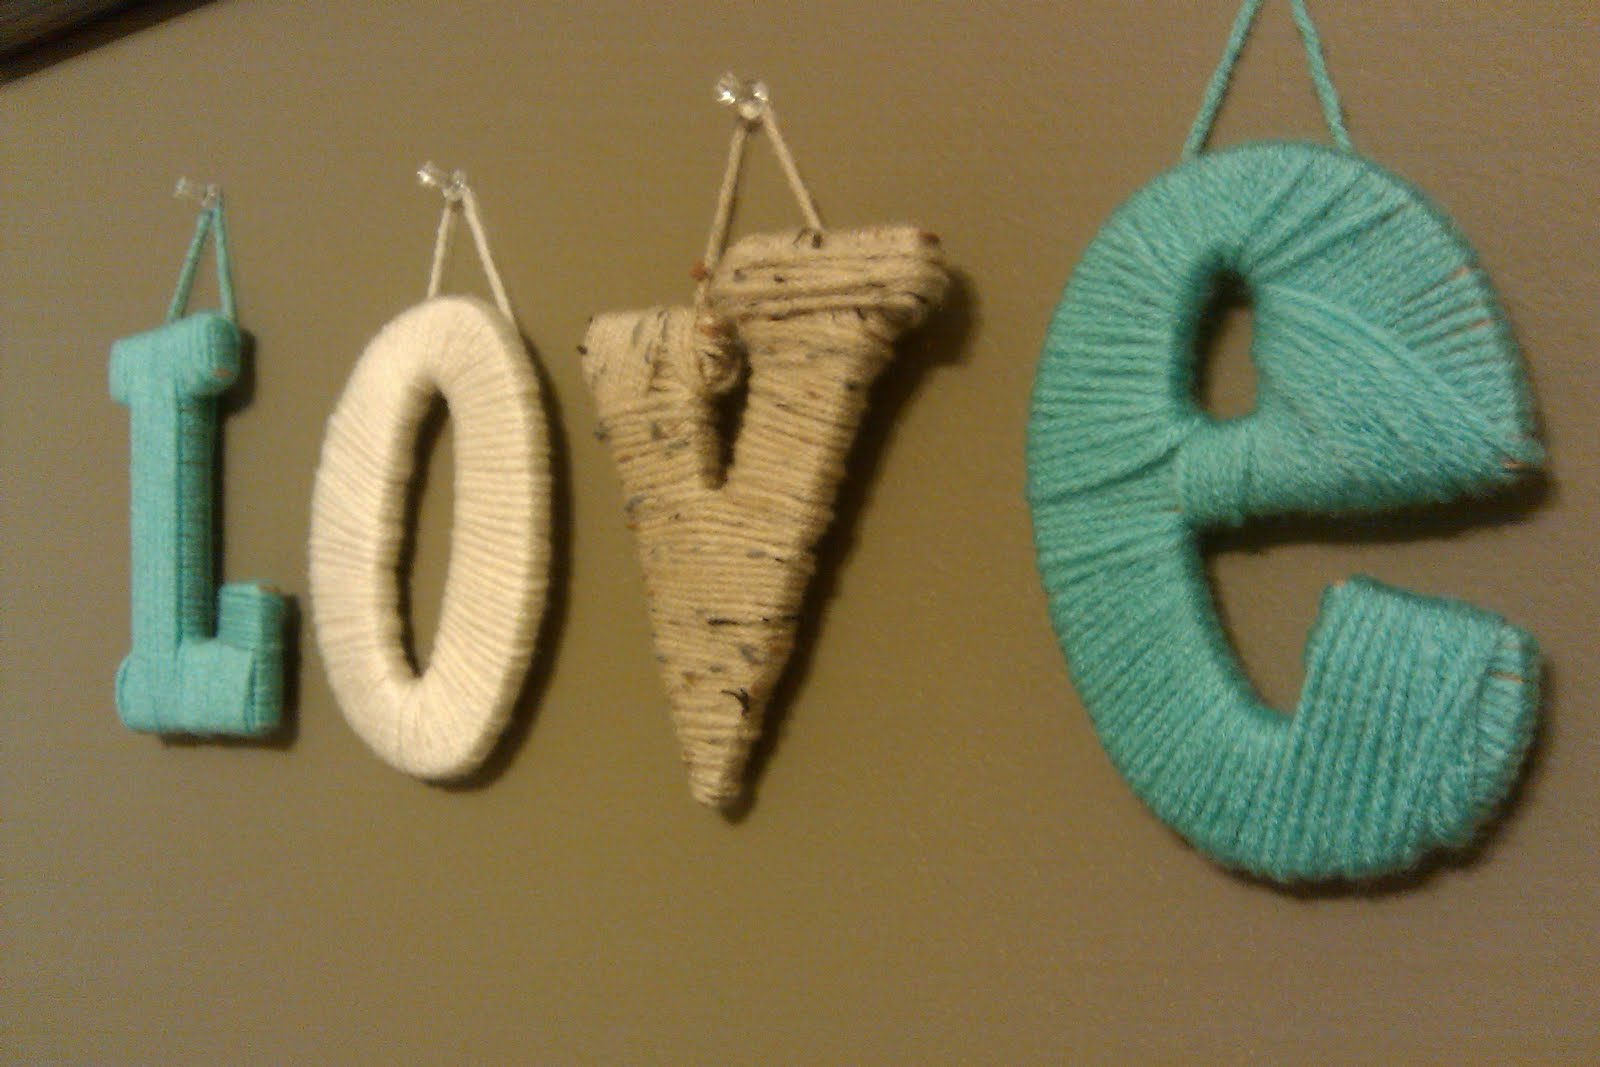 wooden letters covered in yarn Yarn-wrapped letters are an easy way to add a festive flair to wooden letters i used five different colors of yarn, so i covered 1/5 of each letter with each.